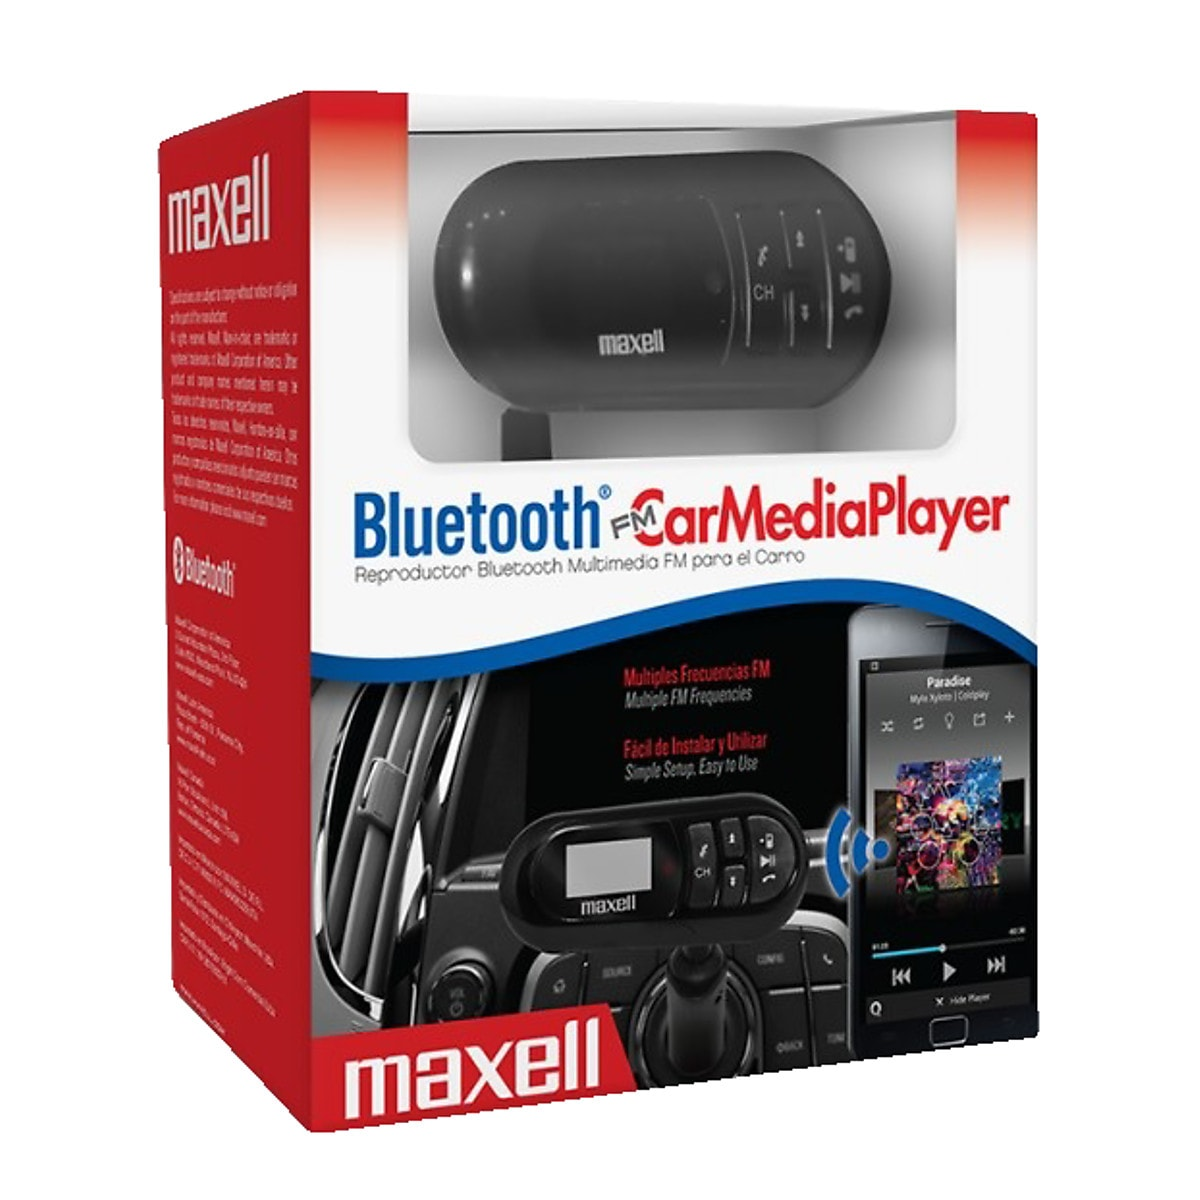 Maxell Bluetooth FM Transmitter